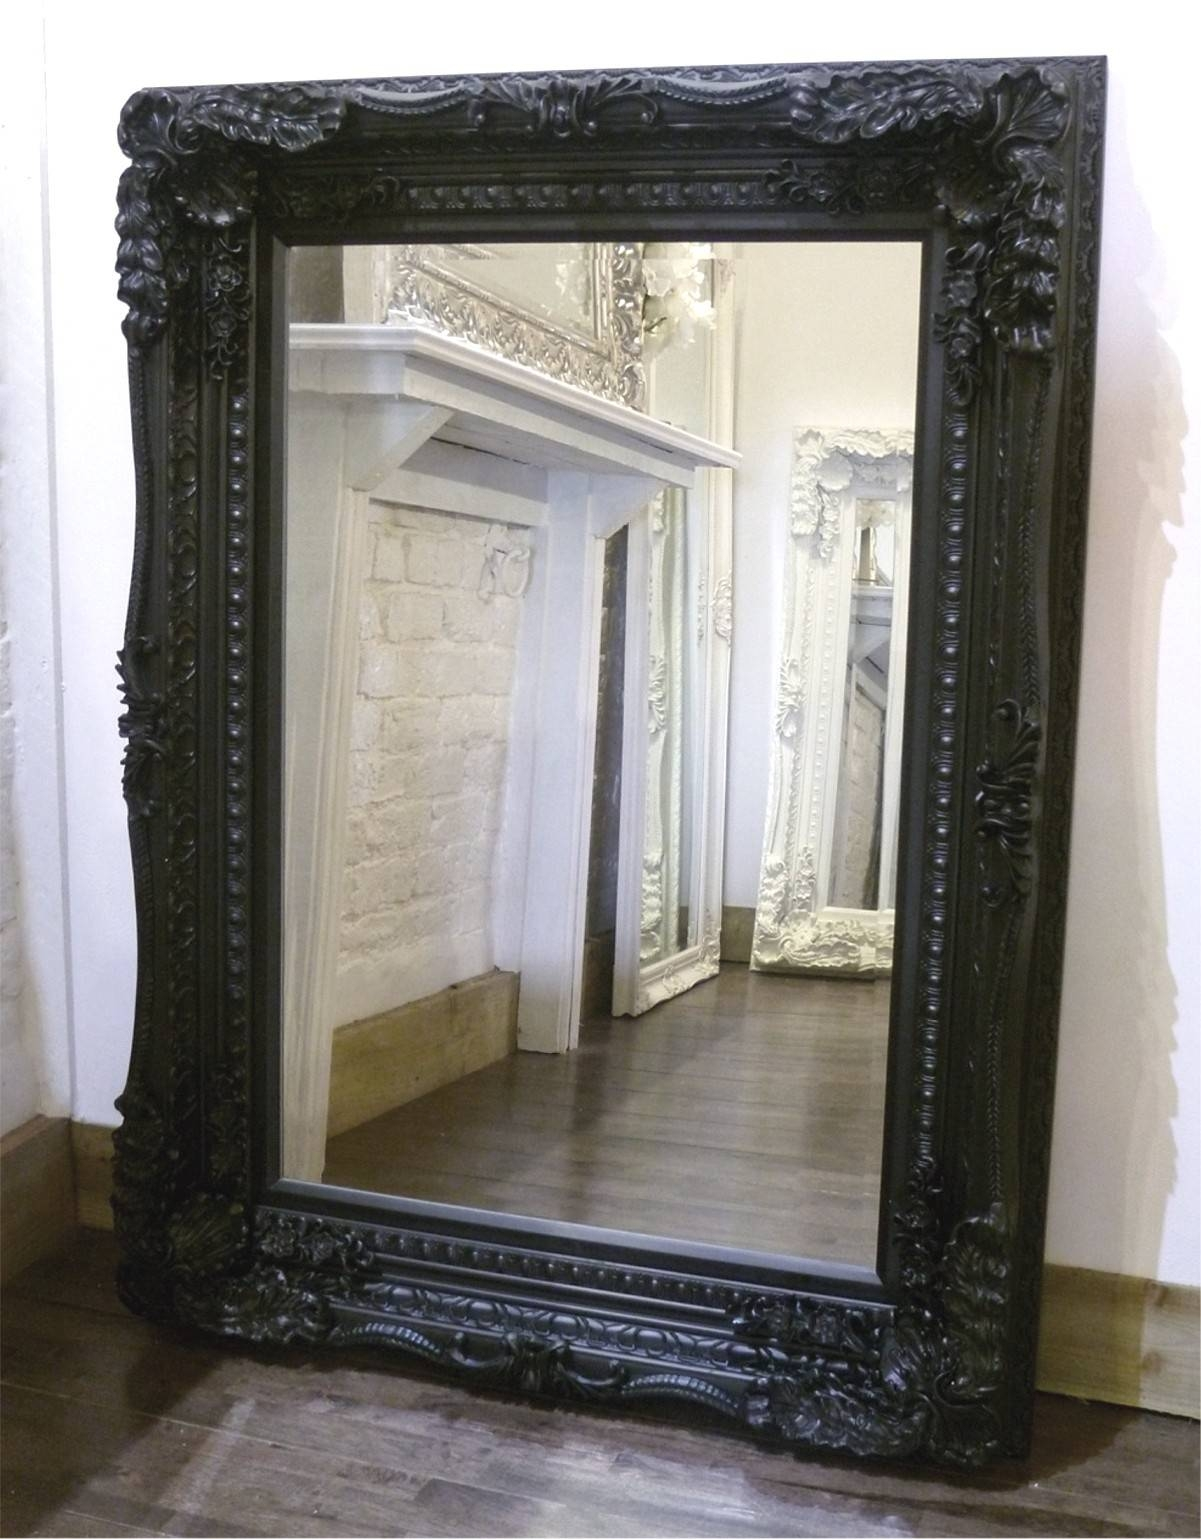 The Best Value Black Chelsea Ornate Mirrors Online. pertaining to Ornate Black Mirrors (Image 13 of 15)